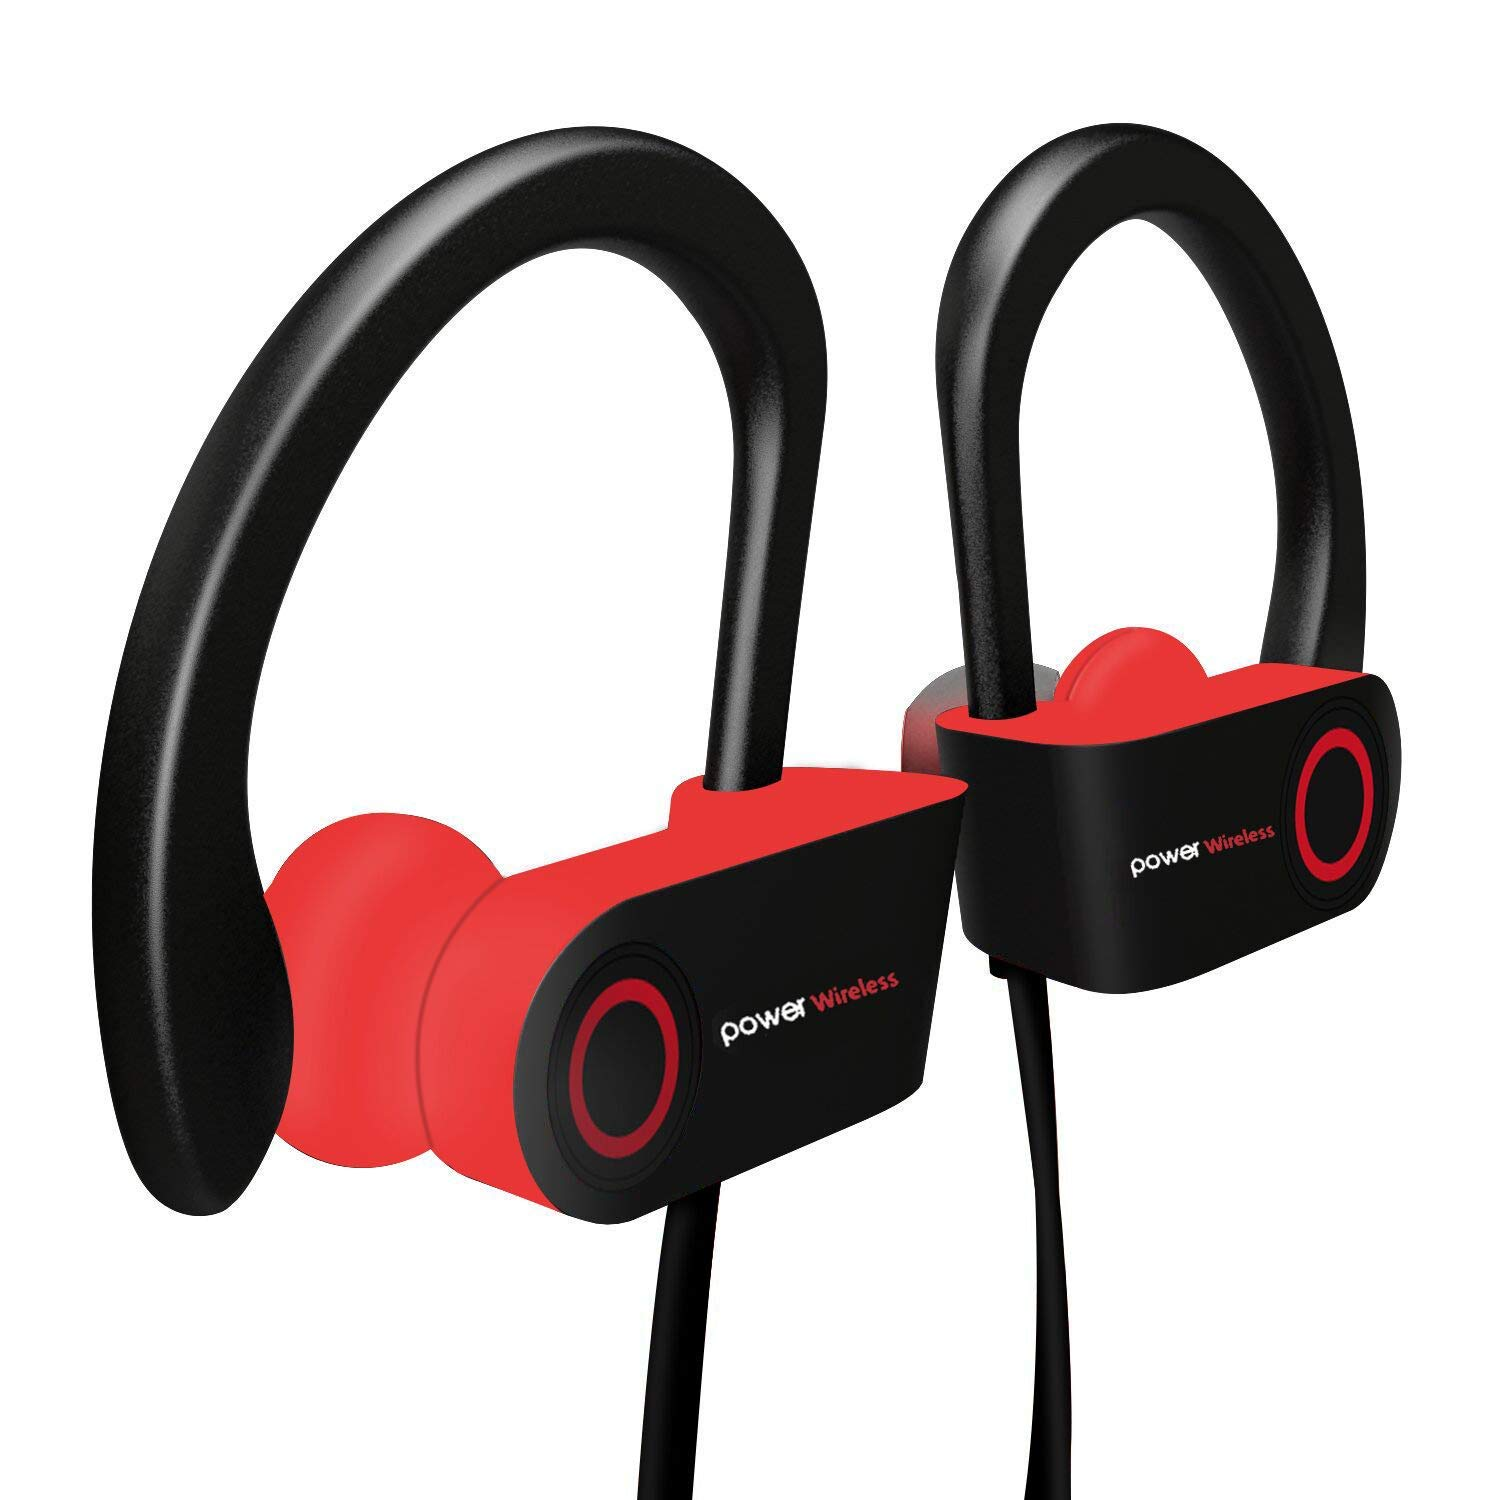 Bluetooth Headphones, Wireless Headphones, Wireless Earbuds Sport, HiFi Stereo In-Ear Earphones w/Mic, Case, 7-9 Hrs Playback Noise Cancelling Headsets (Comfy & Fast Pairing)